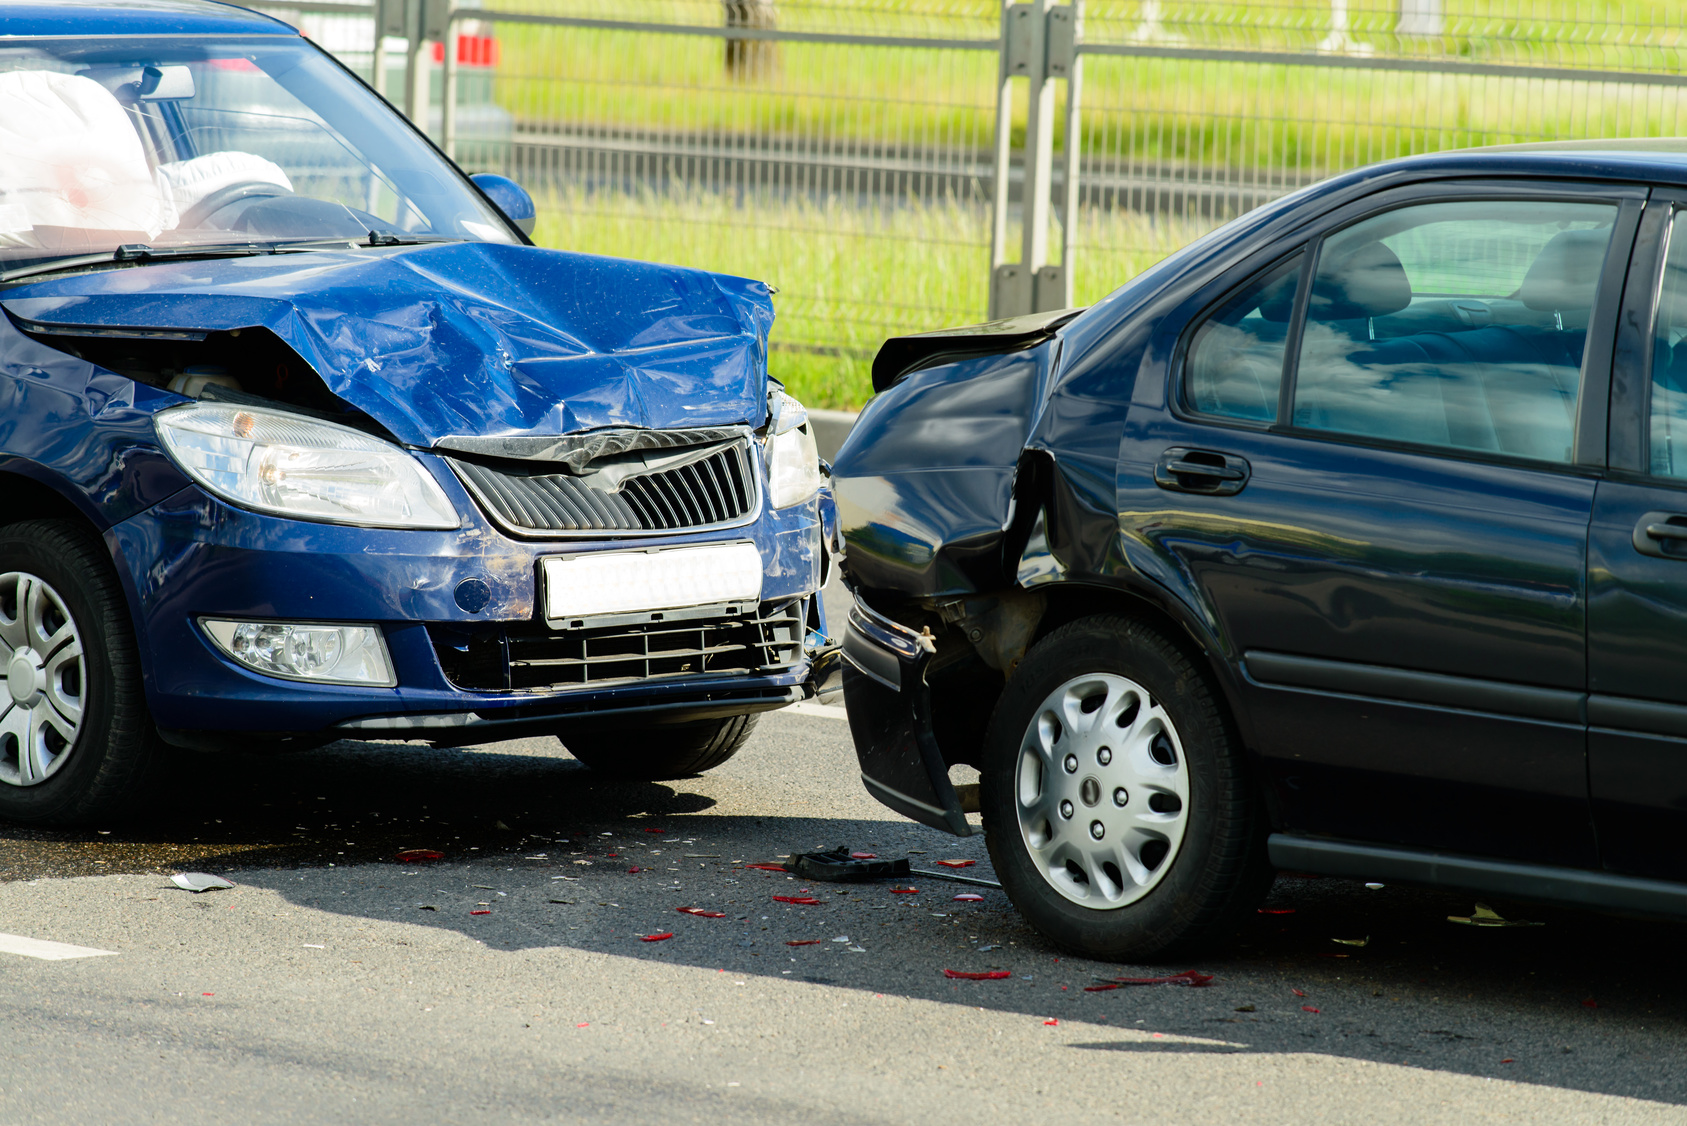 8 Things You Should Do After a Car Accident